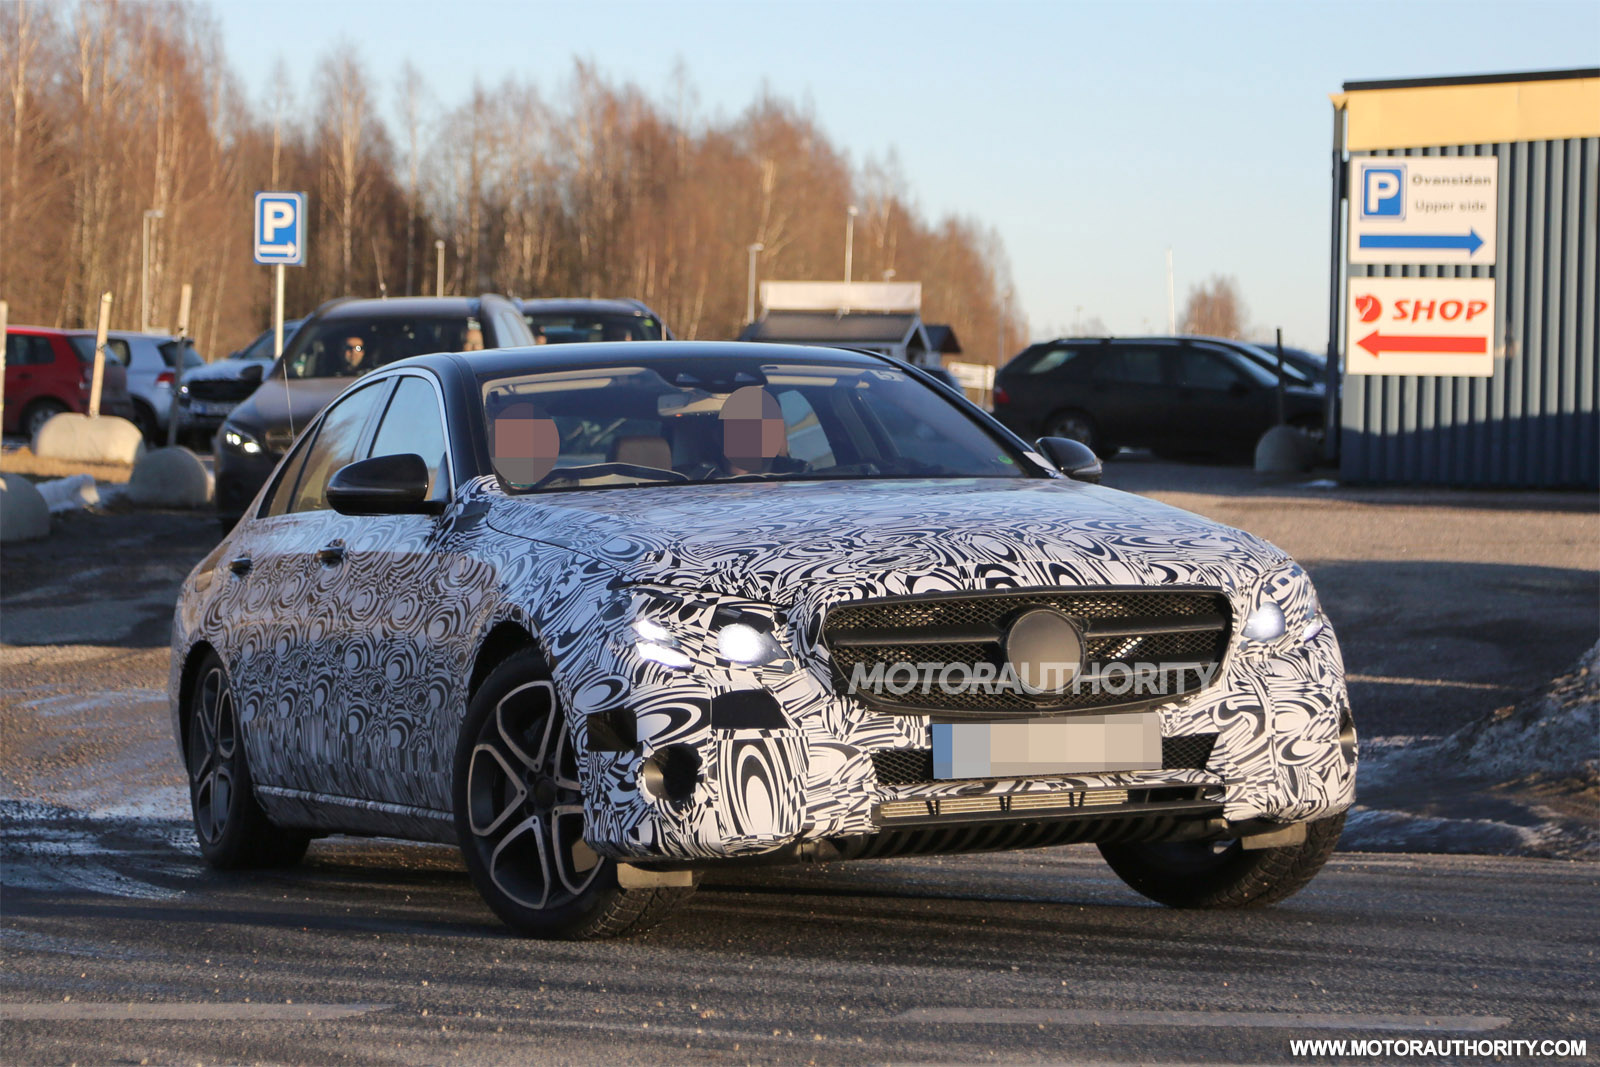 New E-Class To Feature Much More Capable Autonomous System Than S-Class